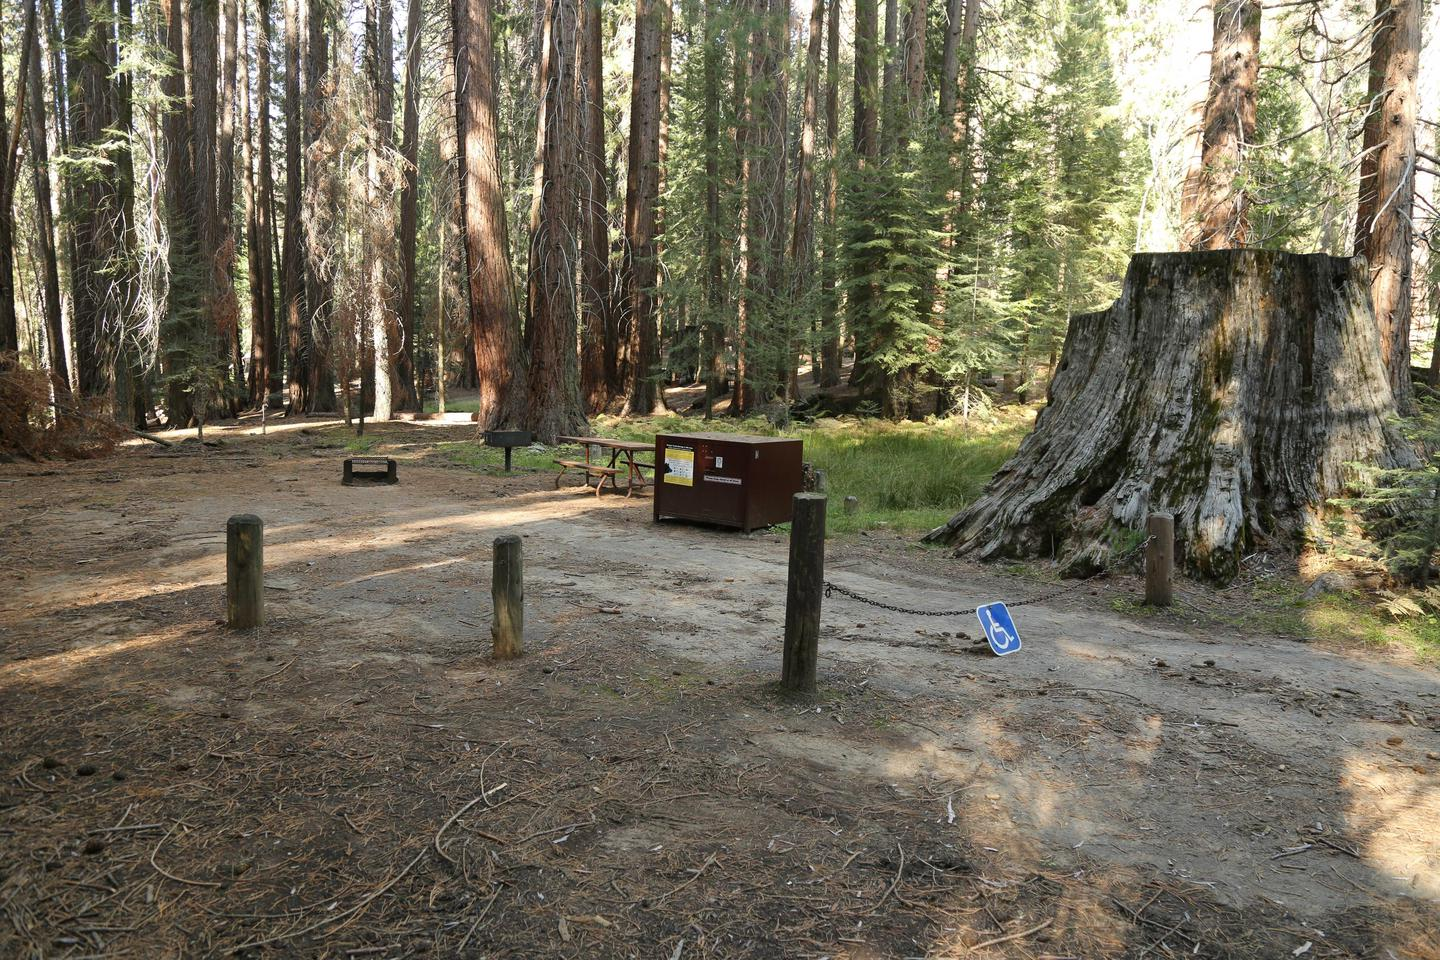 Accessible CampsiteThis accessible campsite features level, firm-packed surfaces.